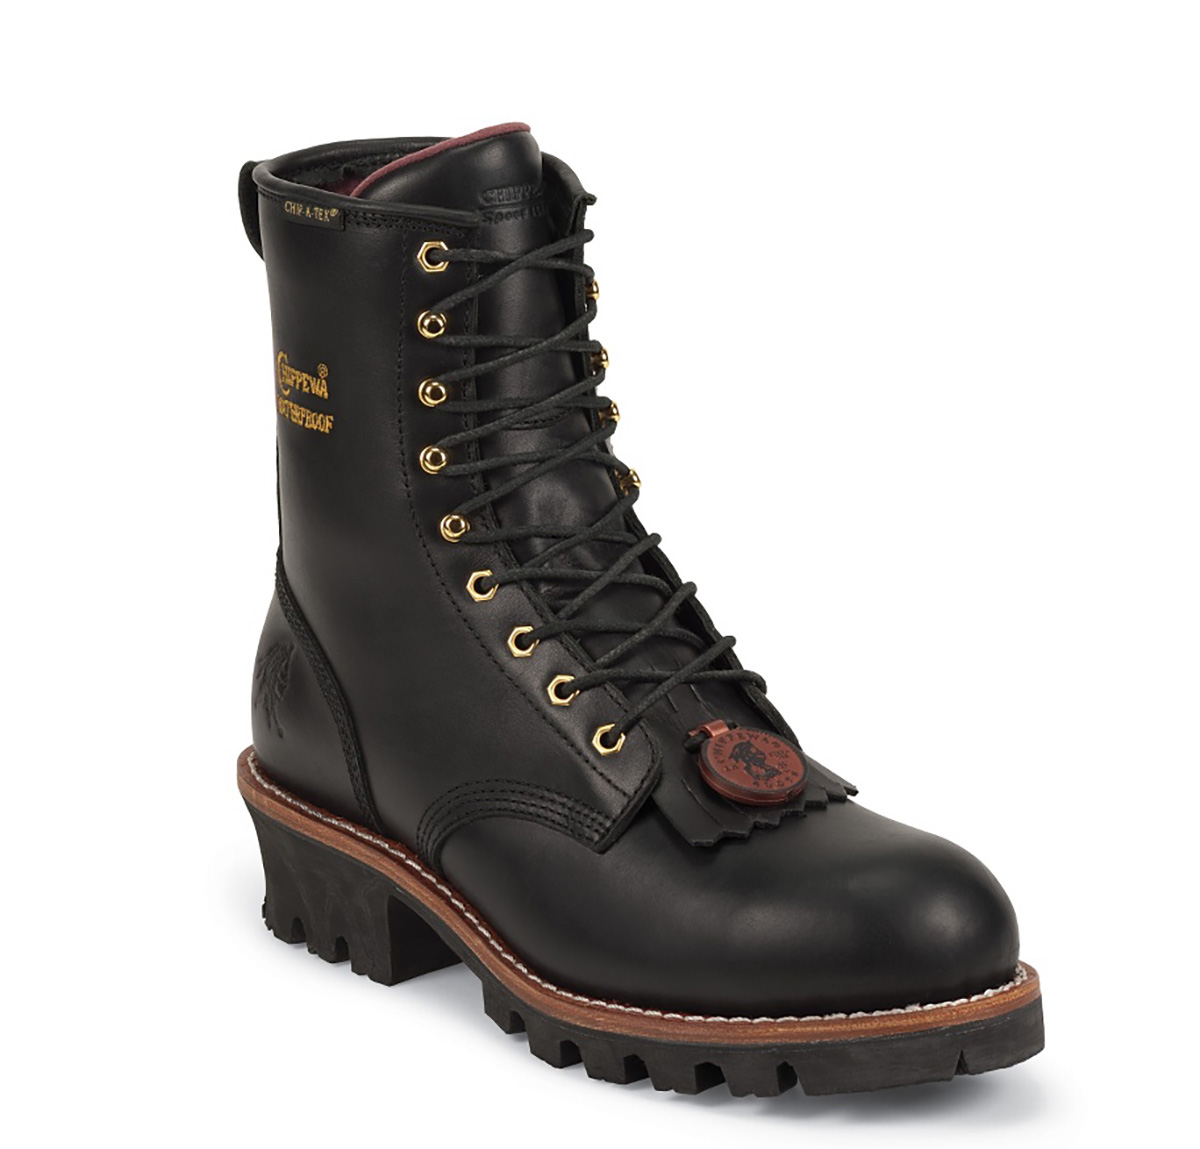 Chippewa L73050 Women's Insulated Steel Toe